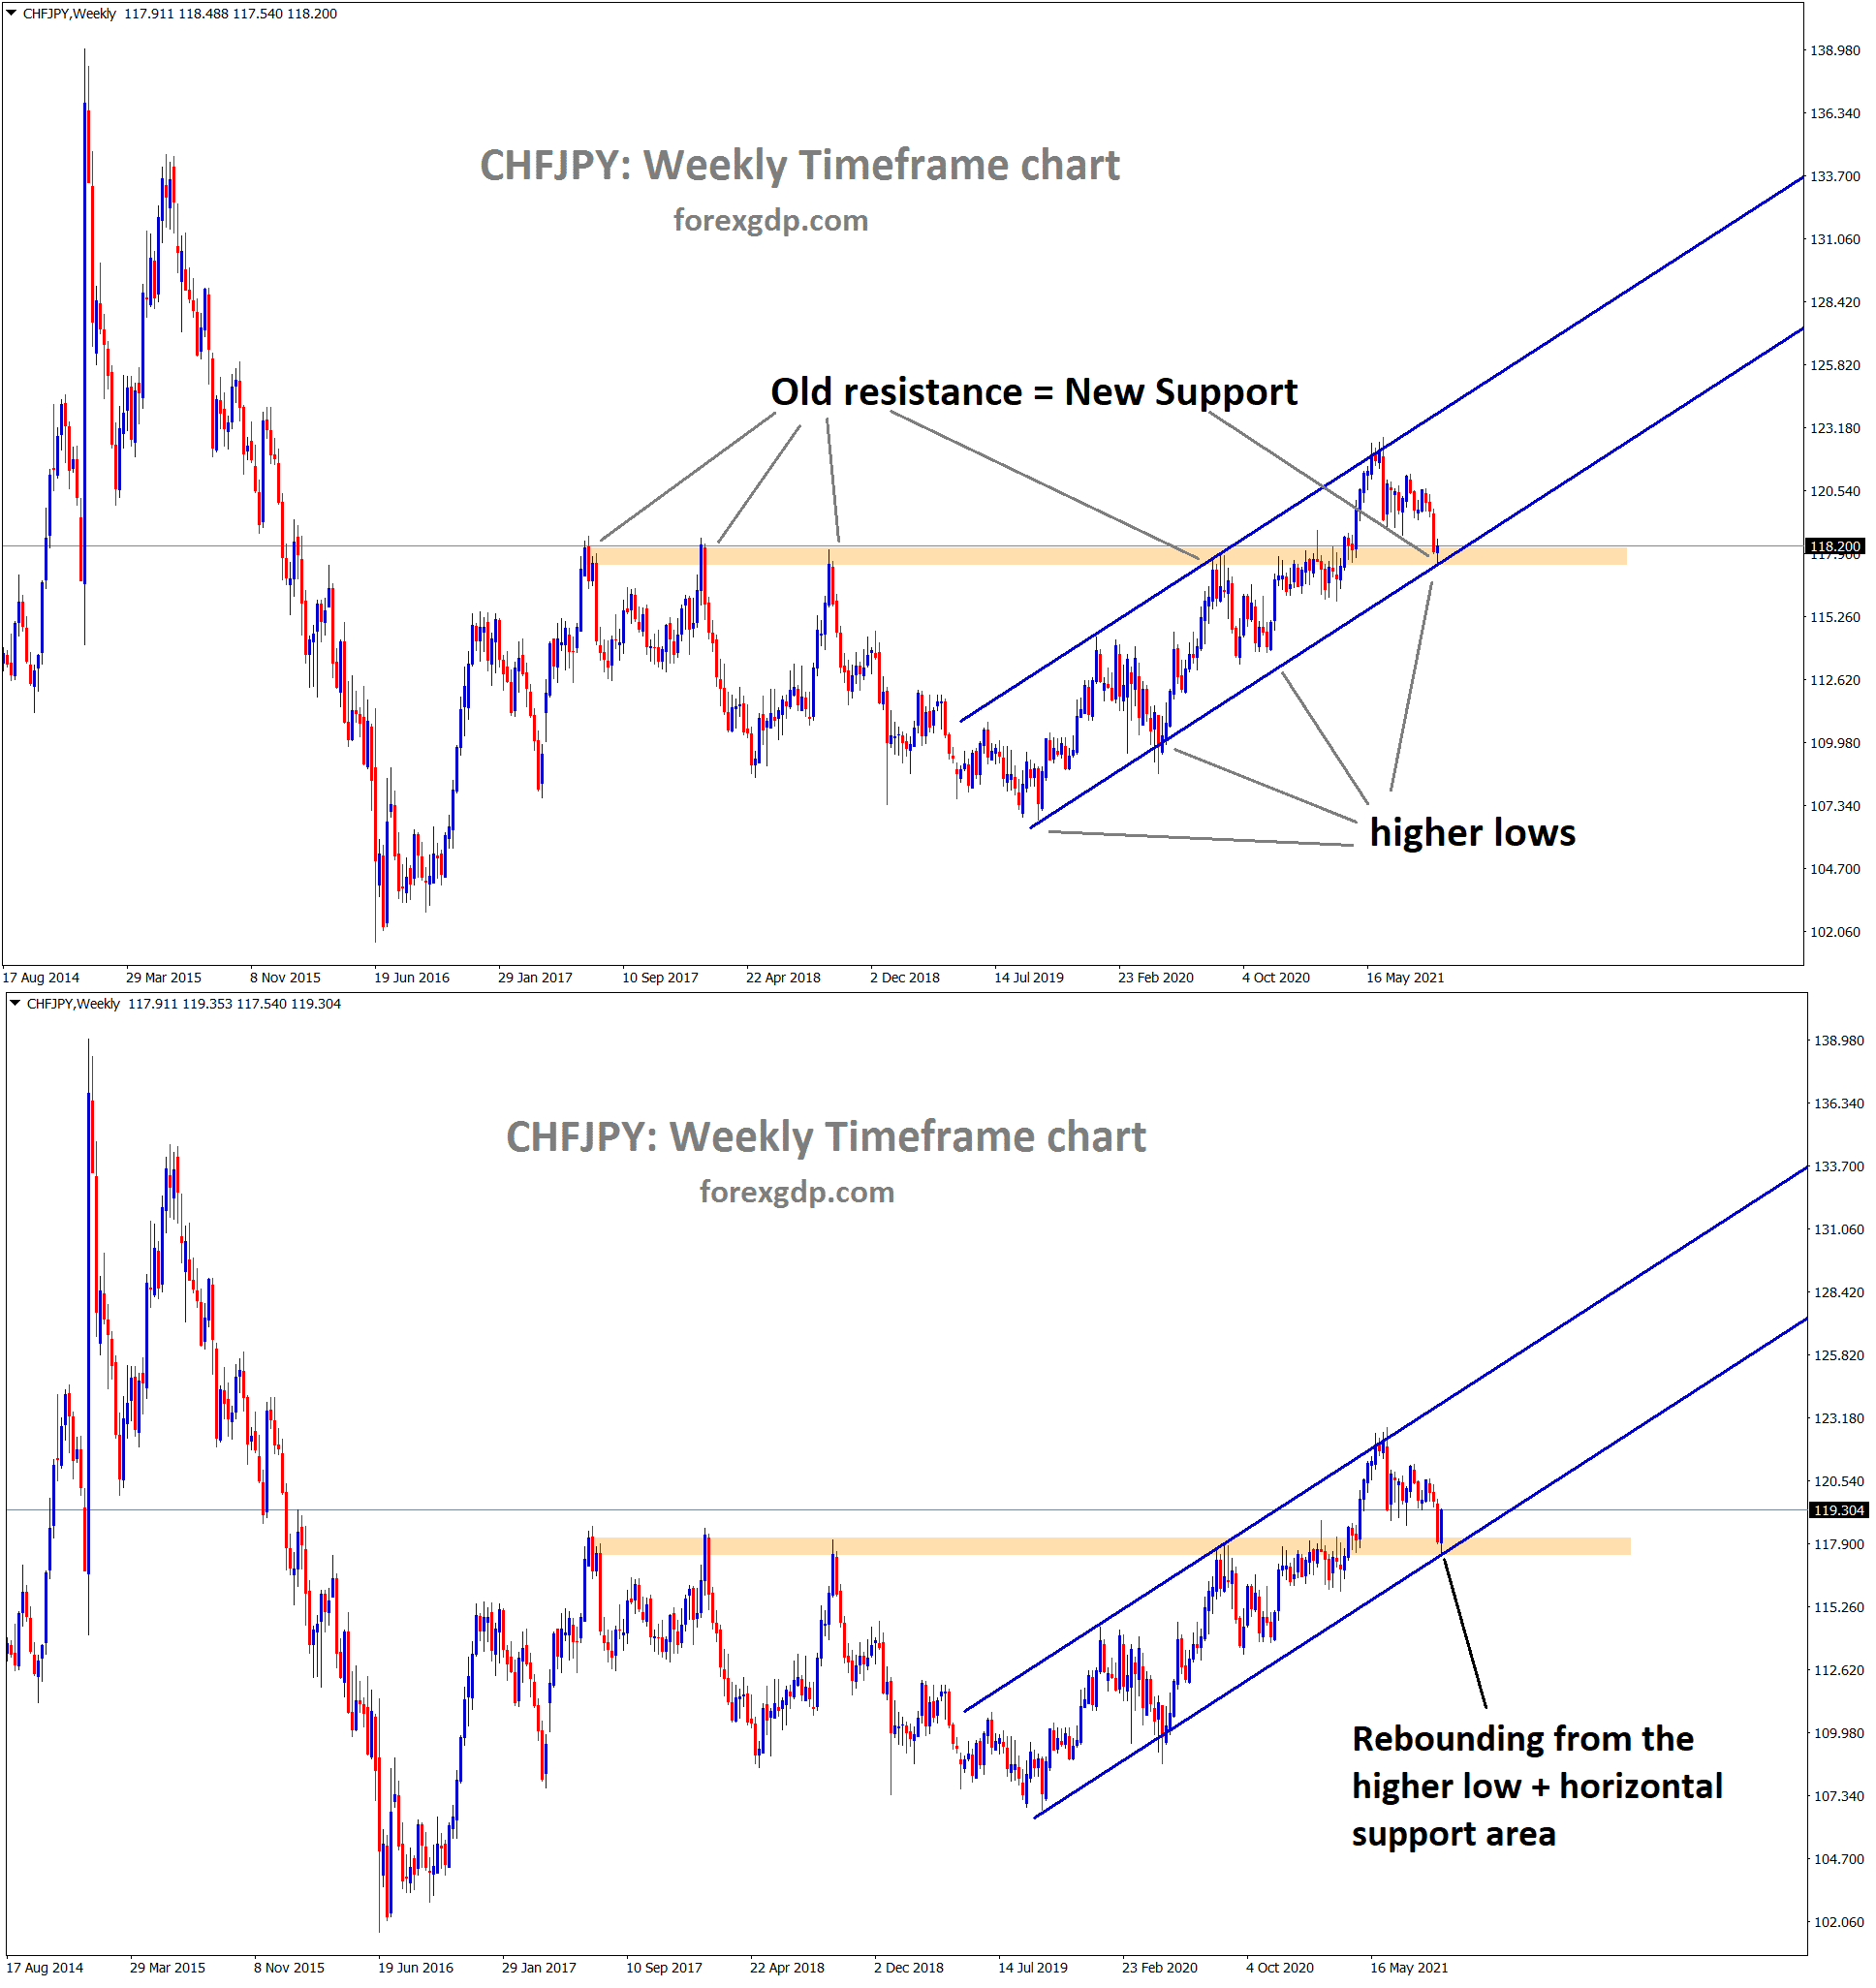 CHFJPY is rebounding from the higher low and the support area